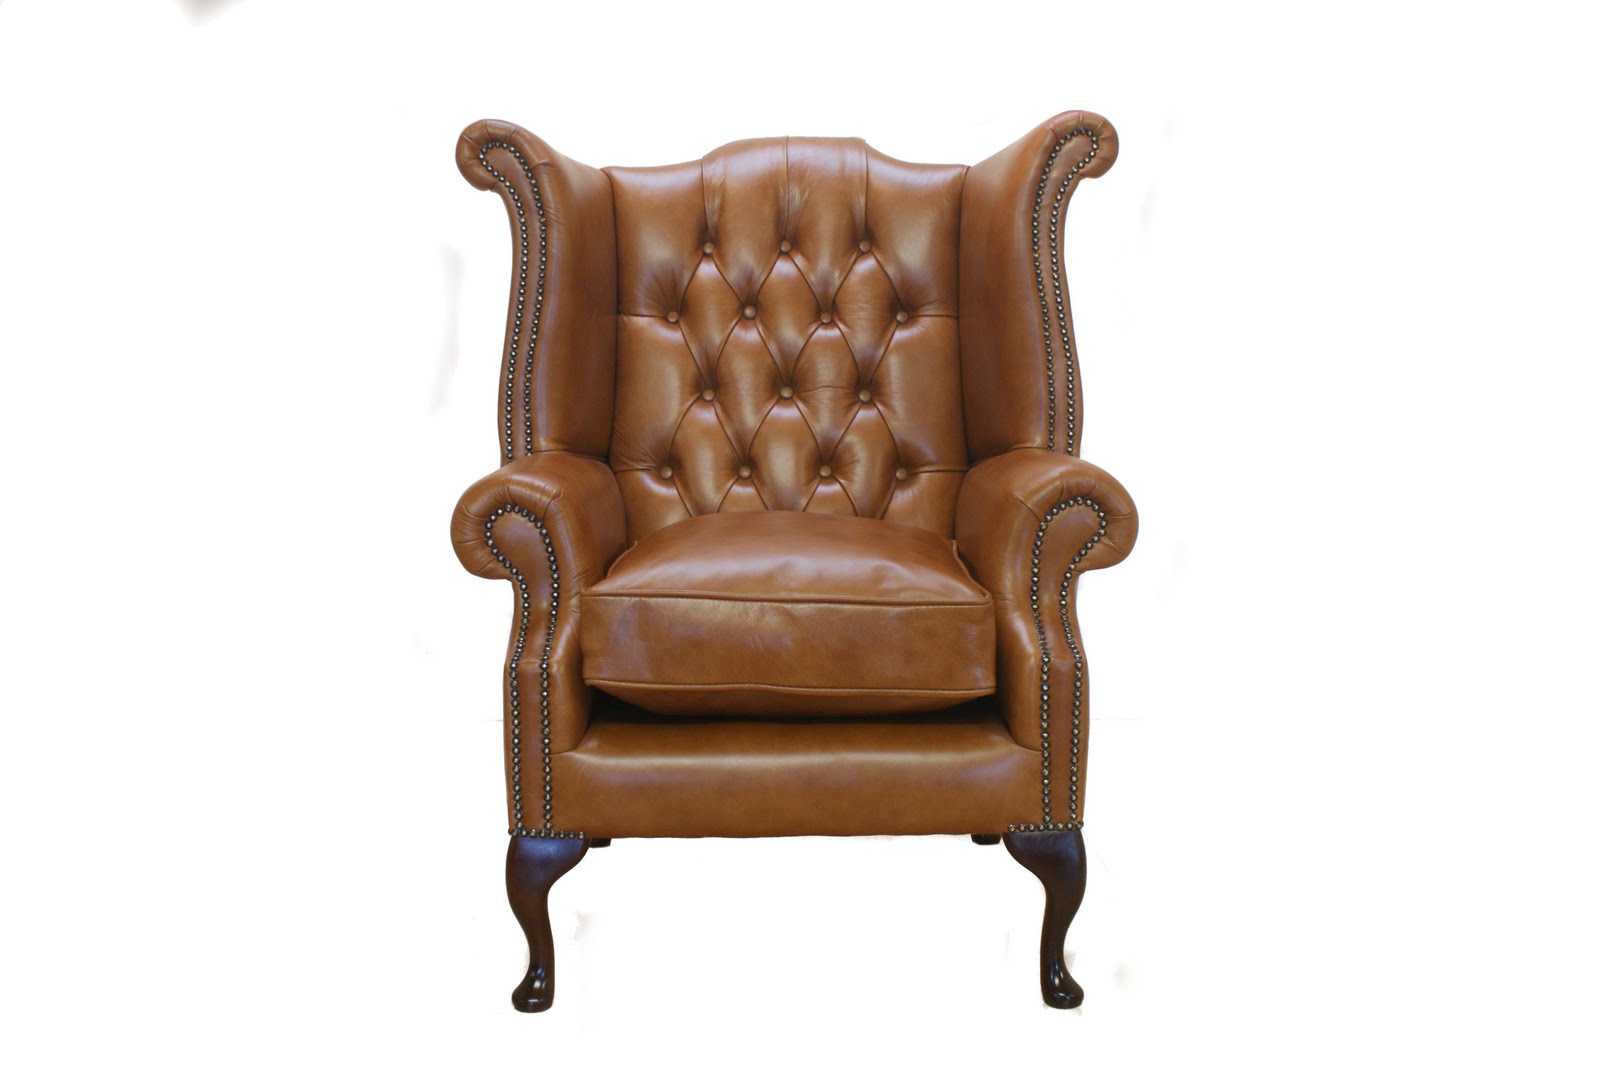 Chesterfield Sofas Tan Leather Chesterfield Sofa